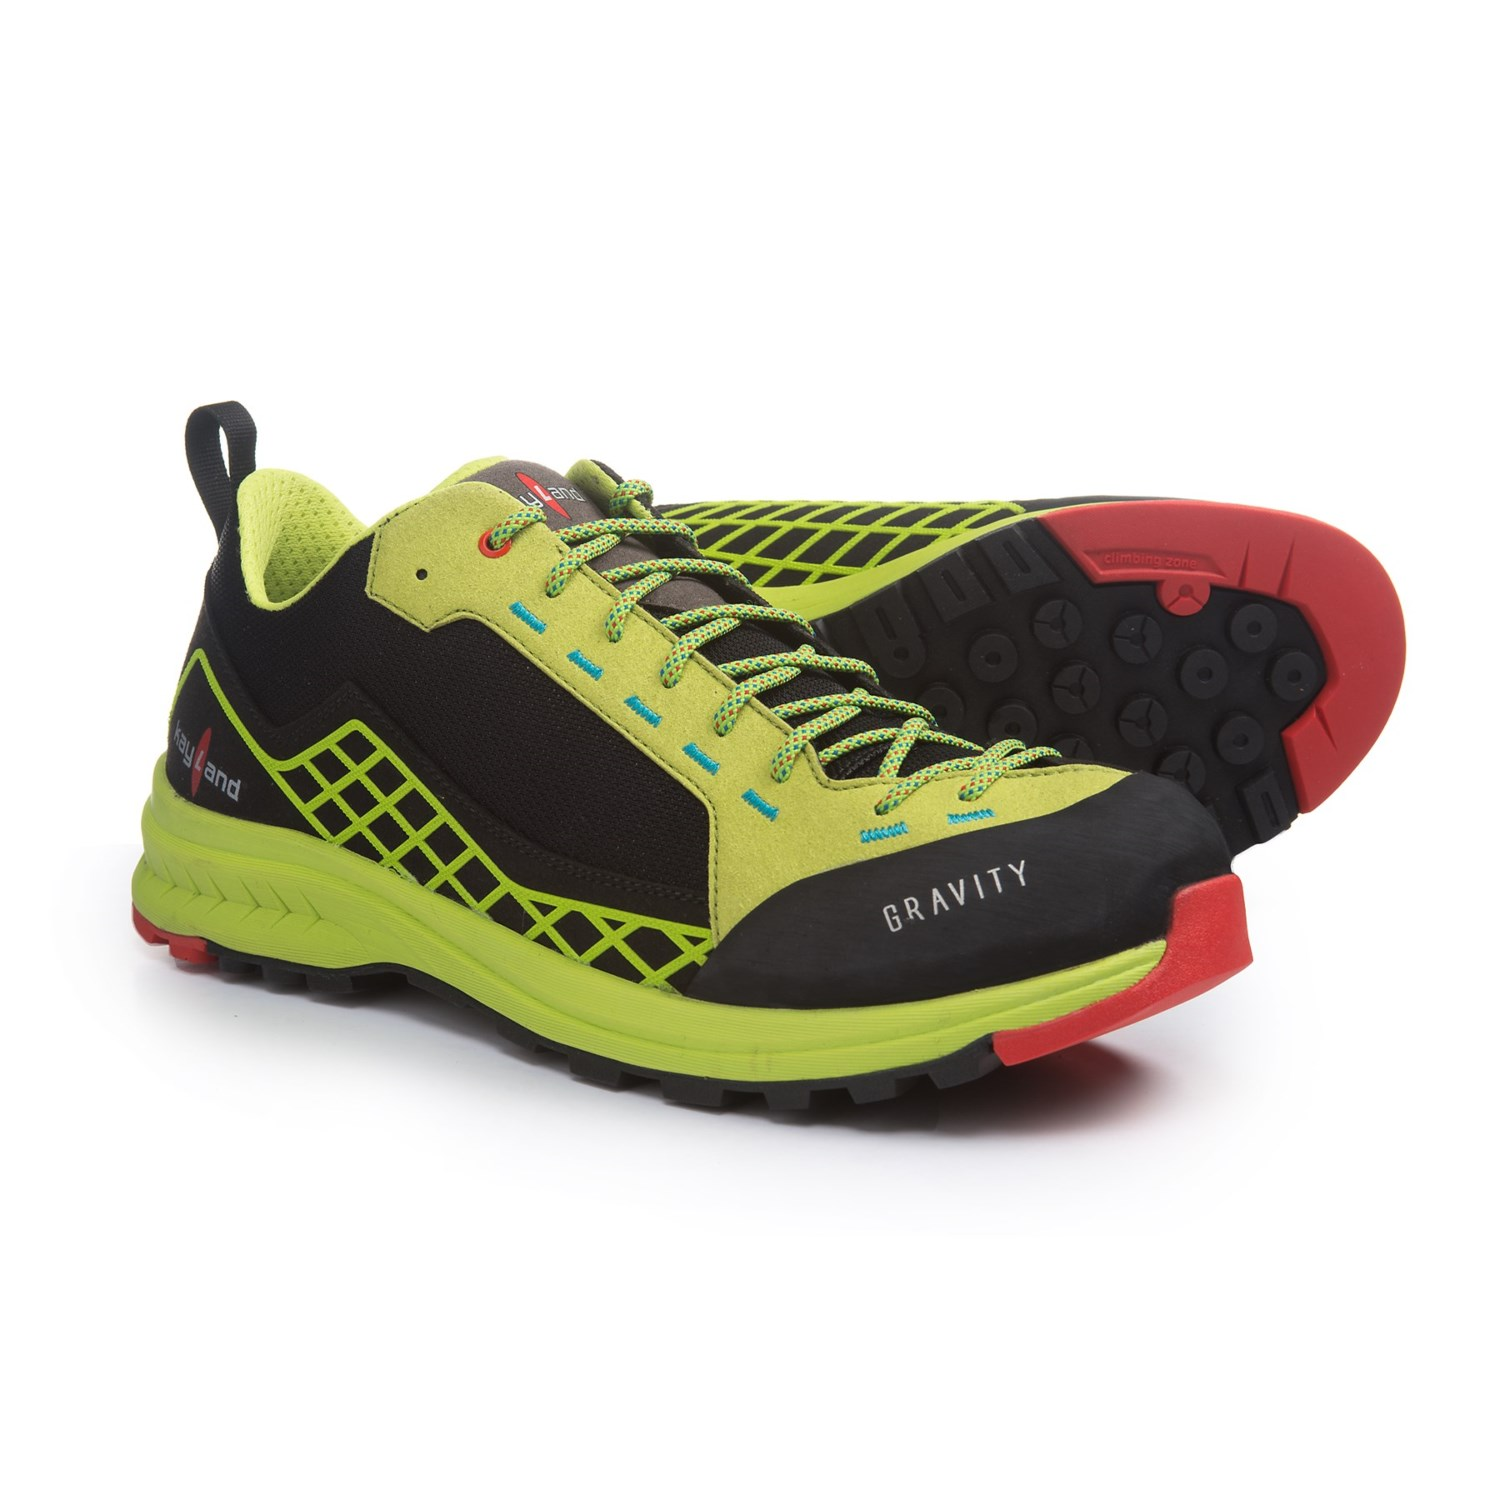 7bd169bf16f8 Kayland Gravity Hiking Shoes (For Men) in Black Lime